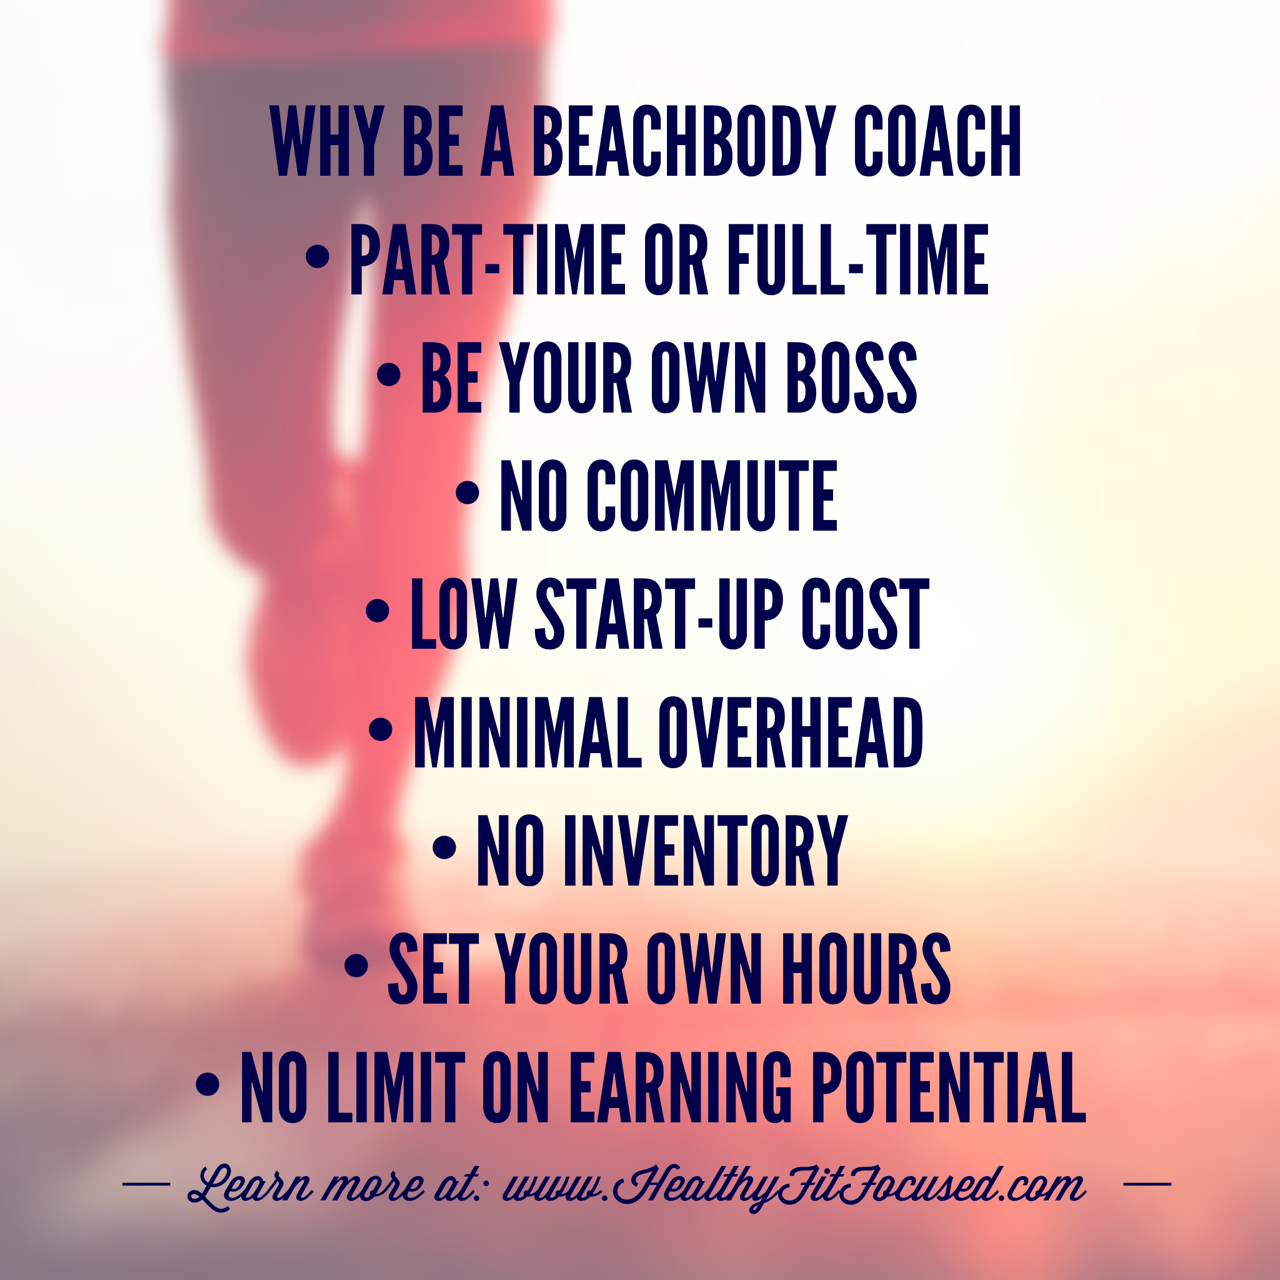 Why Be a Beachbody Coach?  Beachbody Coaching, Helping coaches become successful!  I'm looking for 5 highly motivated people ready to earn a significant income by helping others. www.HealthyFitFocused.com